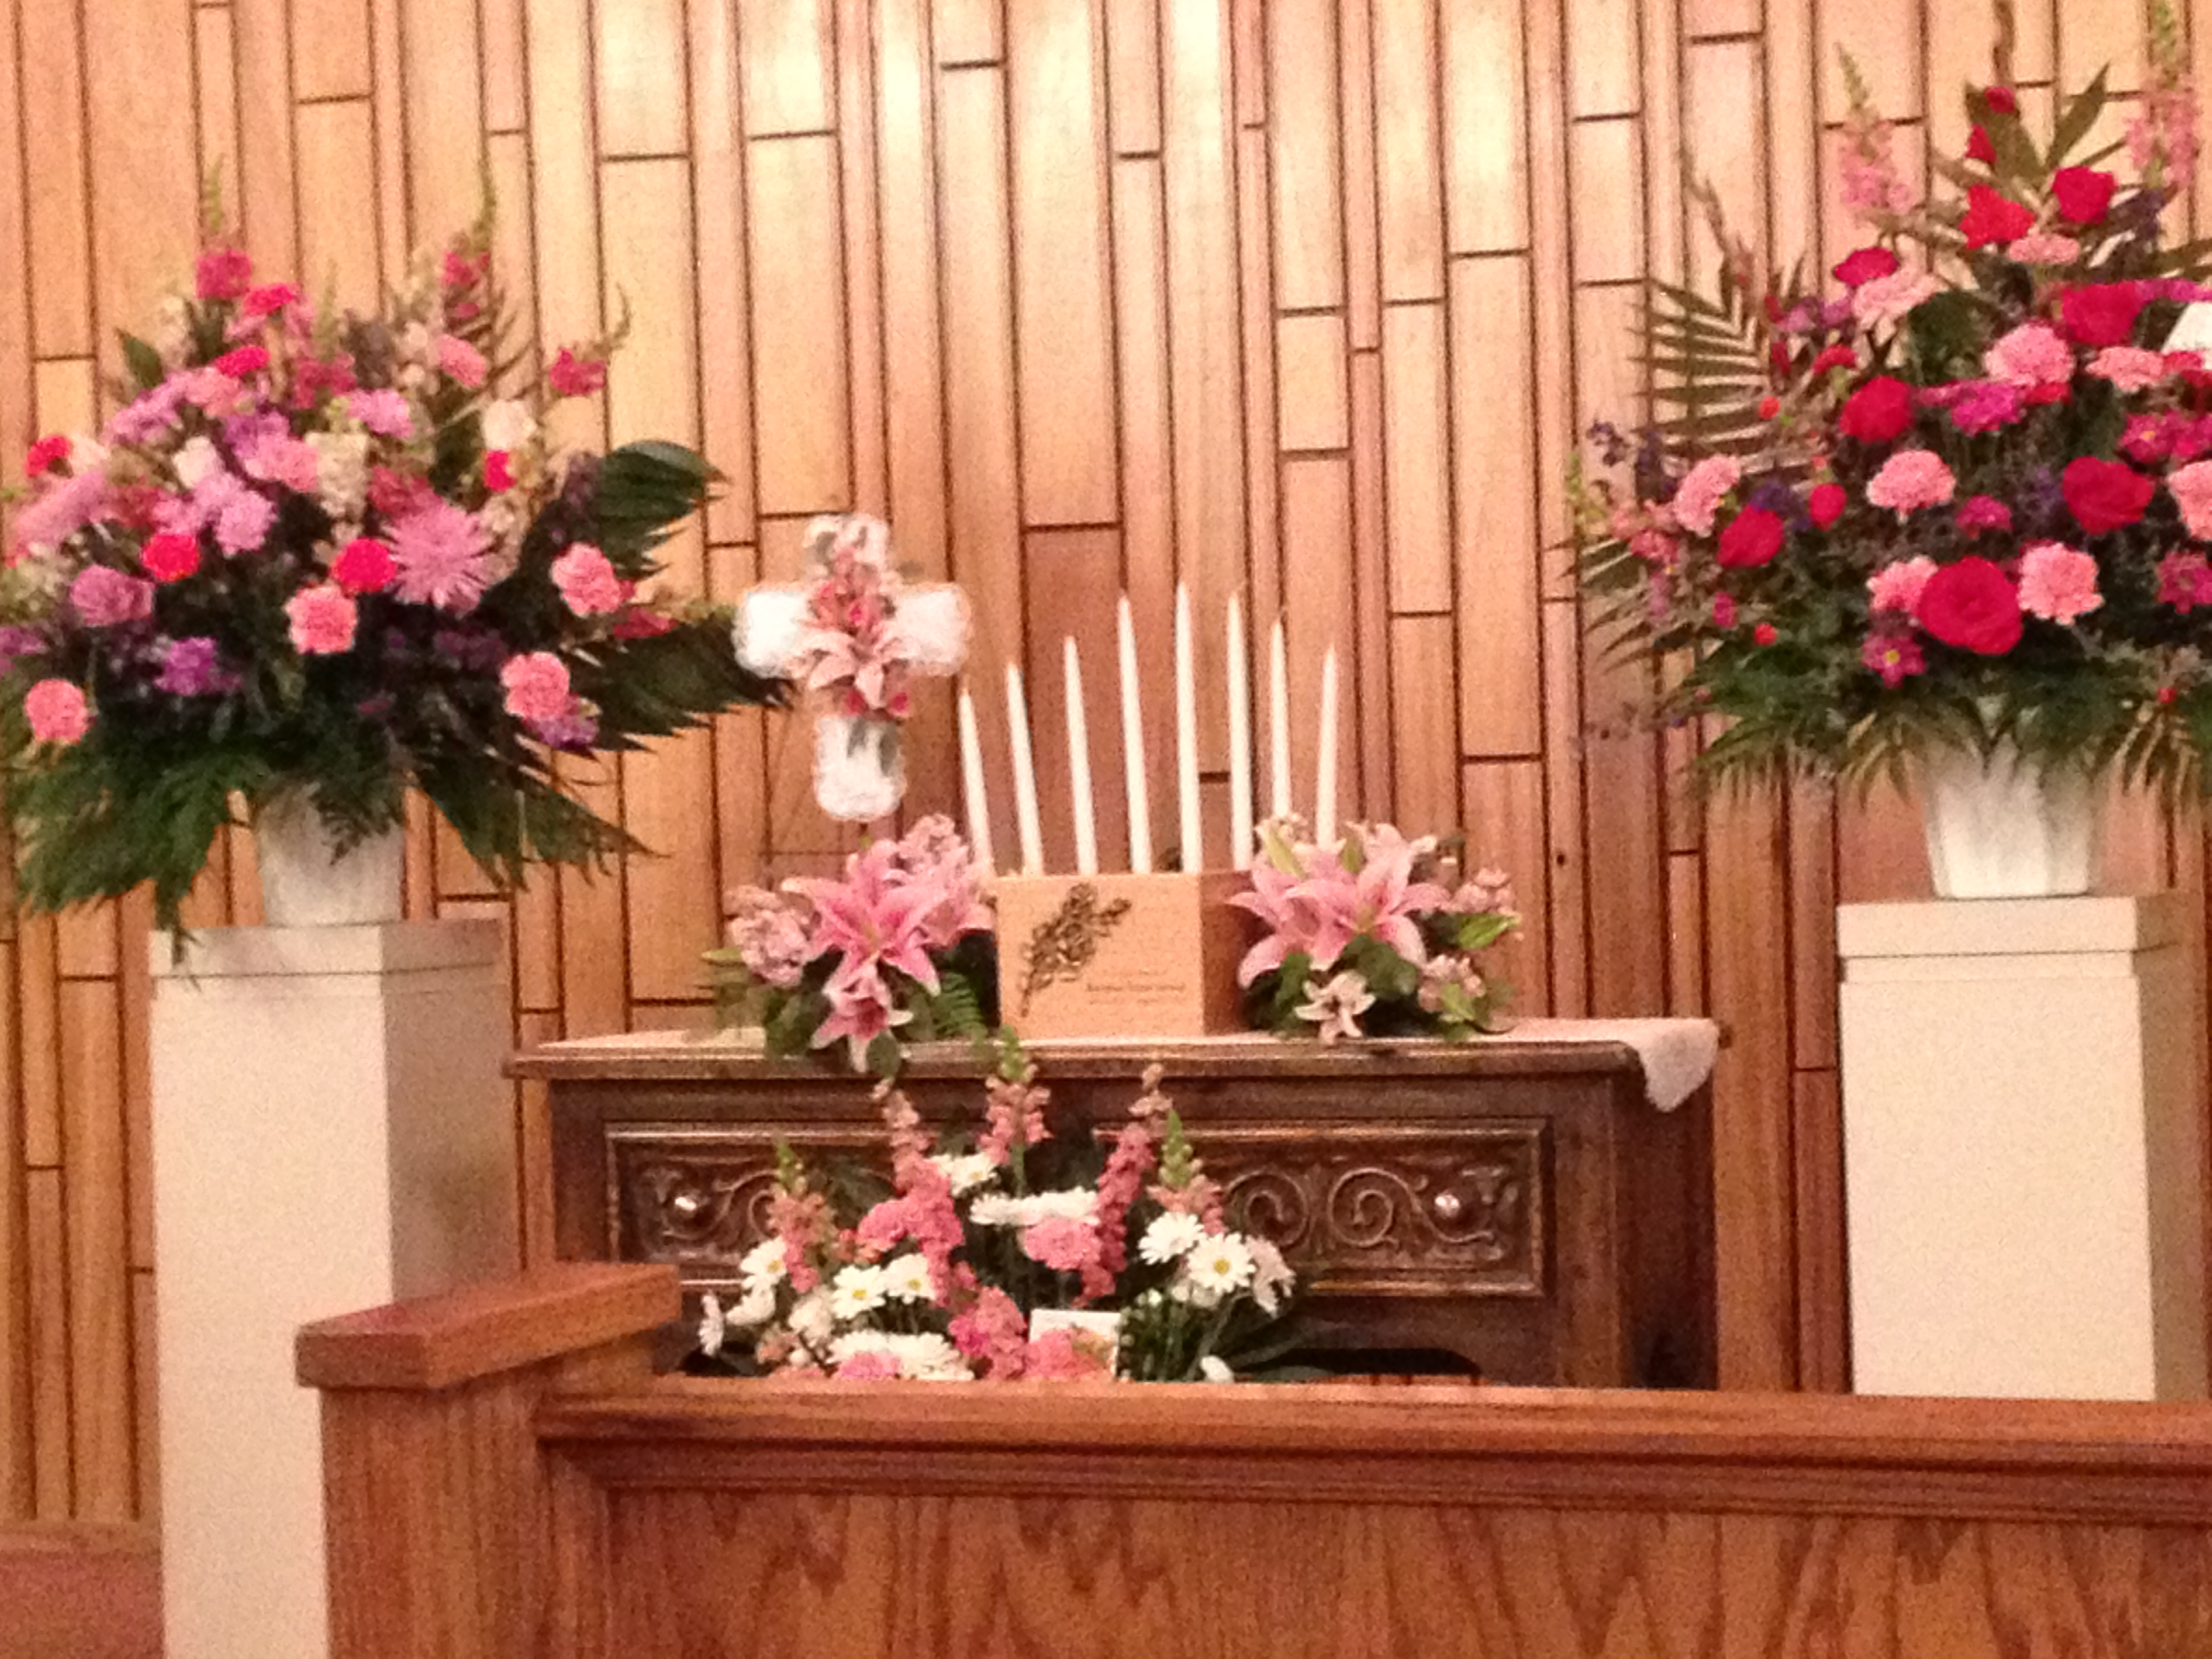 Bernice greer seventh day adventist celebration a good goodbye bernice greer urn and flowers izmirmasajfo